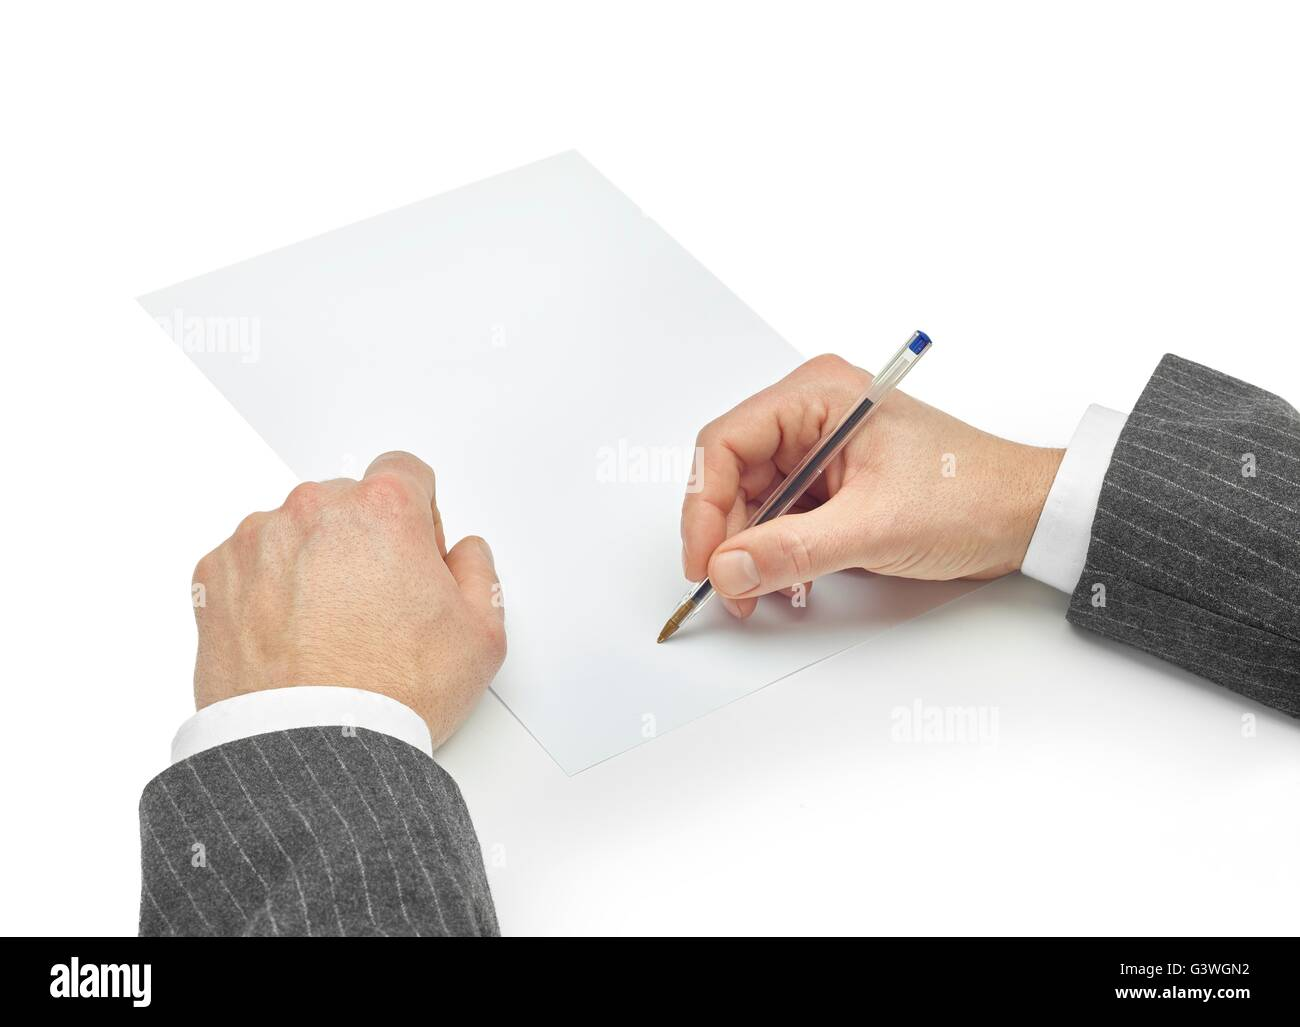 signing a contract with clipping path isolated on white background - Stock Image